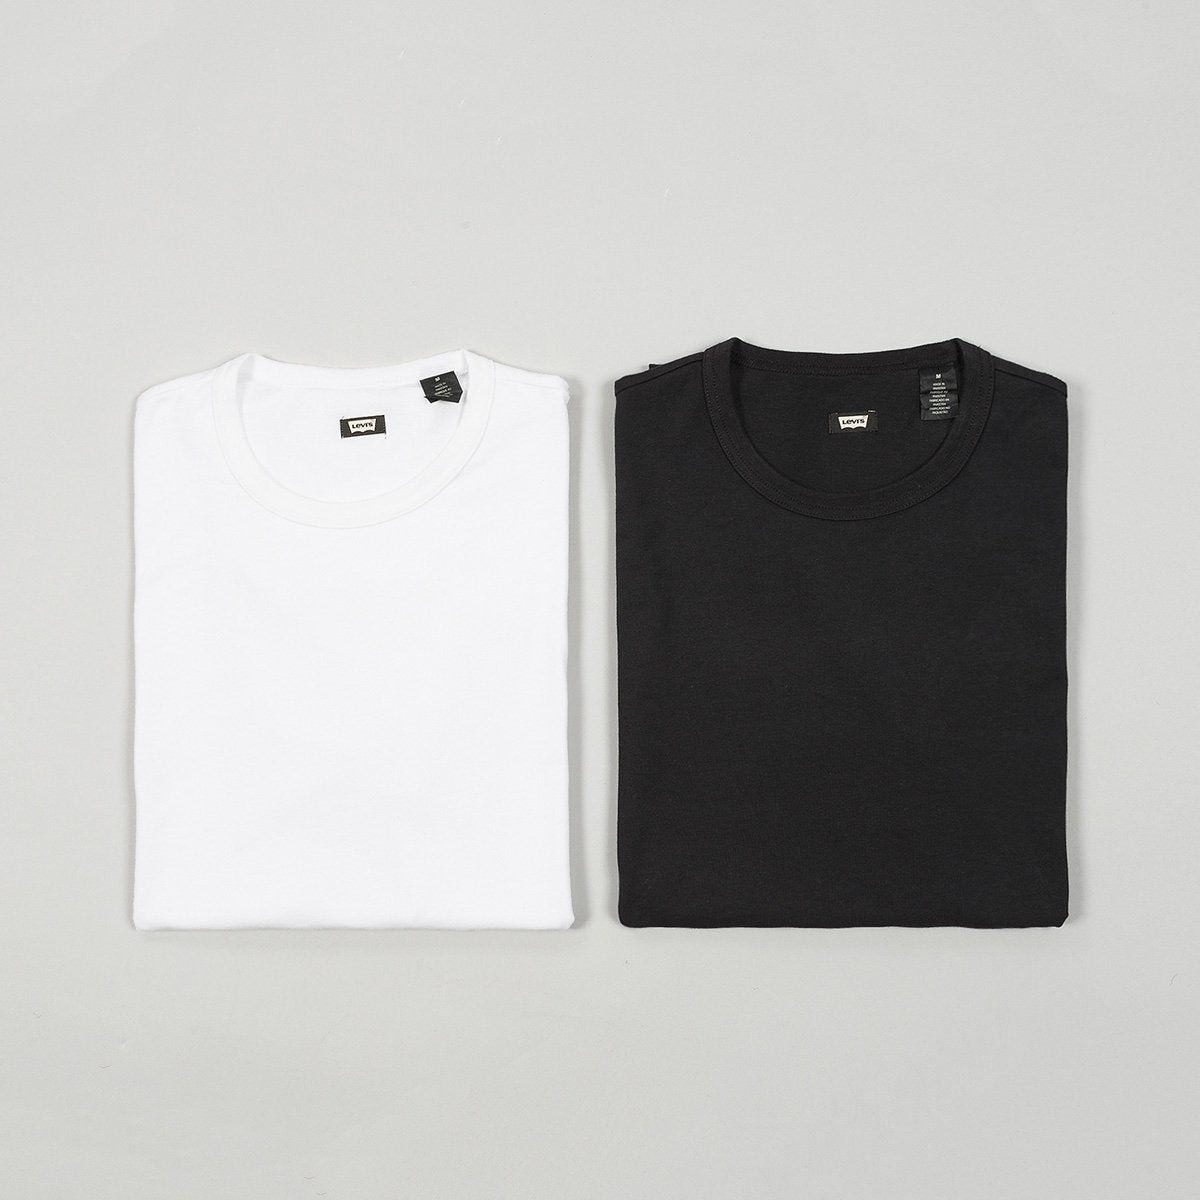 Levis Skate Tee 2 Pack White/Jet Black - Clothing